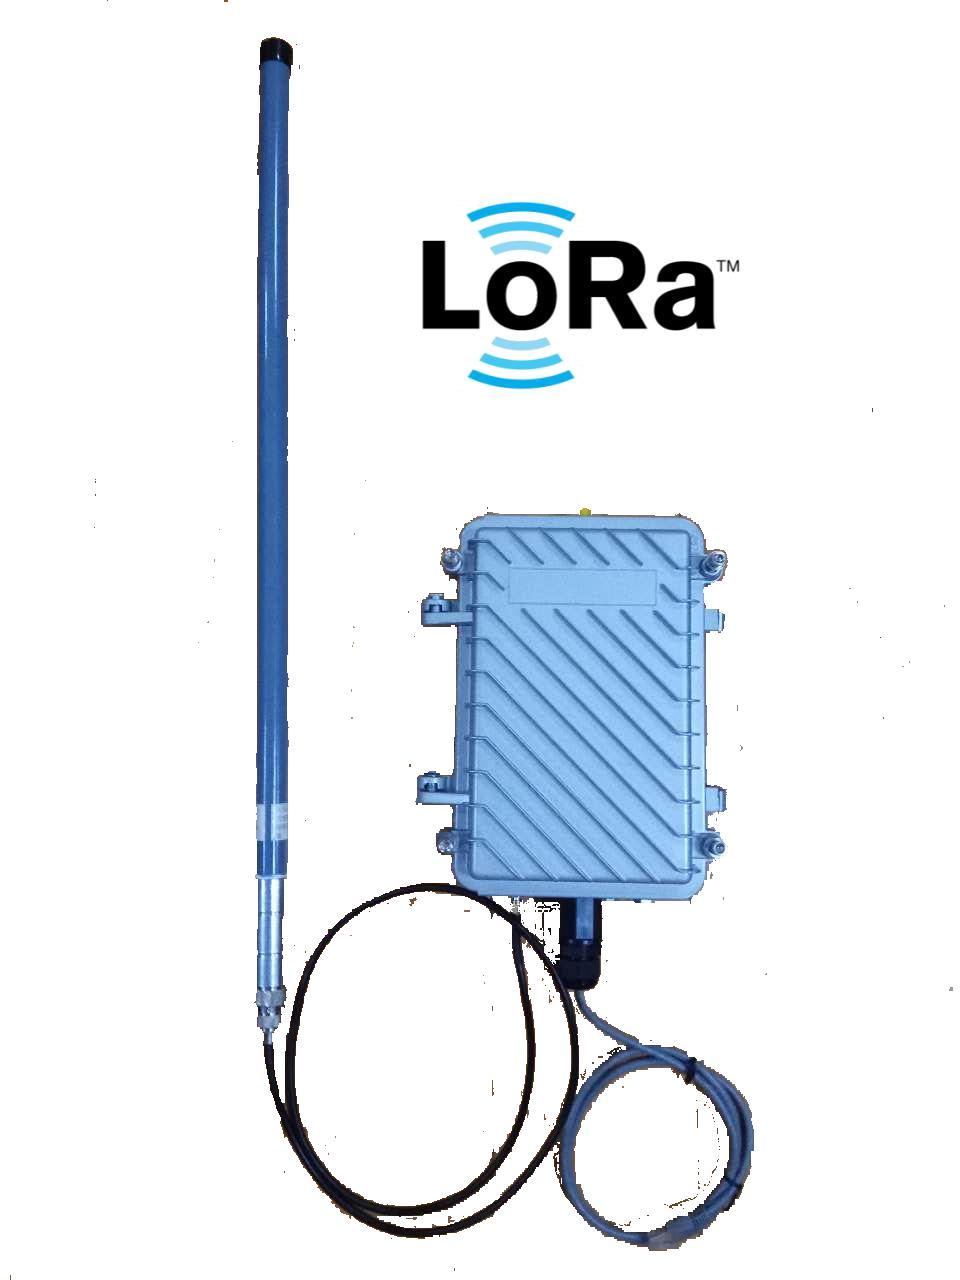 SX1301 LoRaWAN Gateway / Base Station, Industrial Class Outdoor Waterproof POE/GPS/4G Full CNC